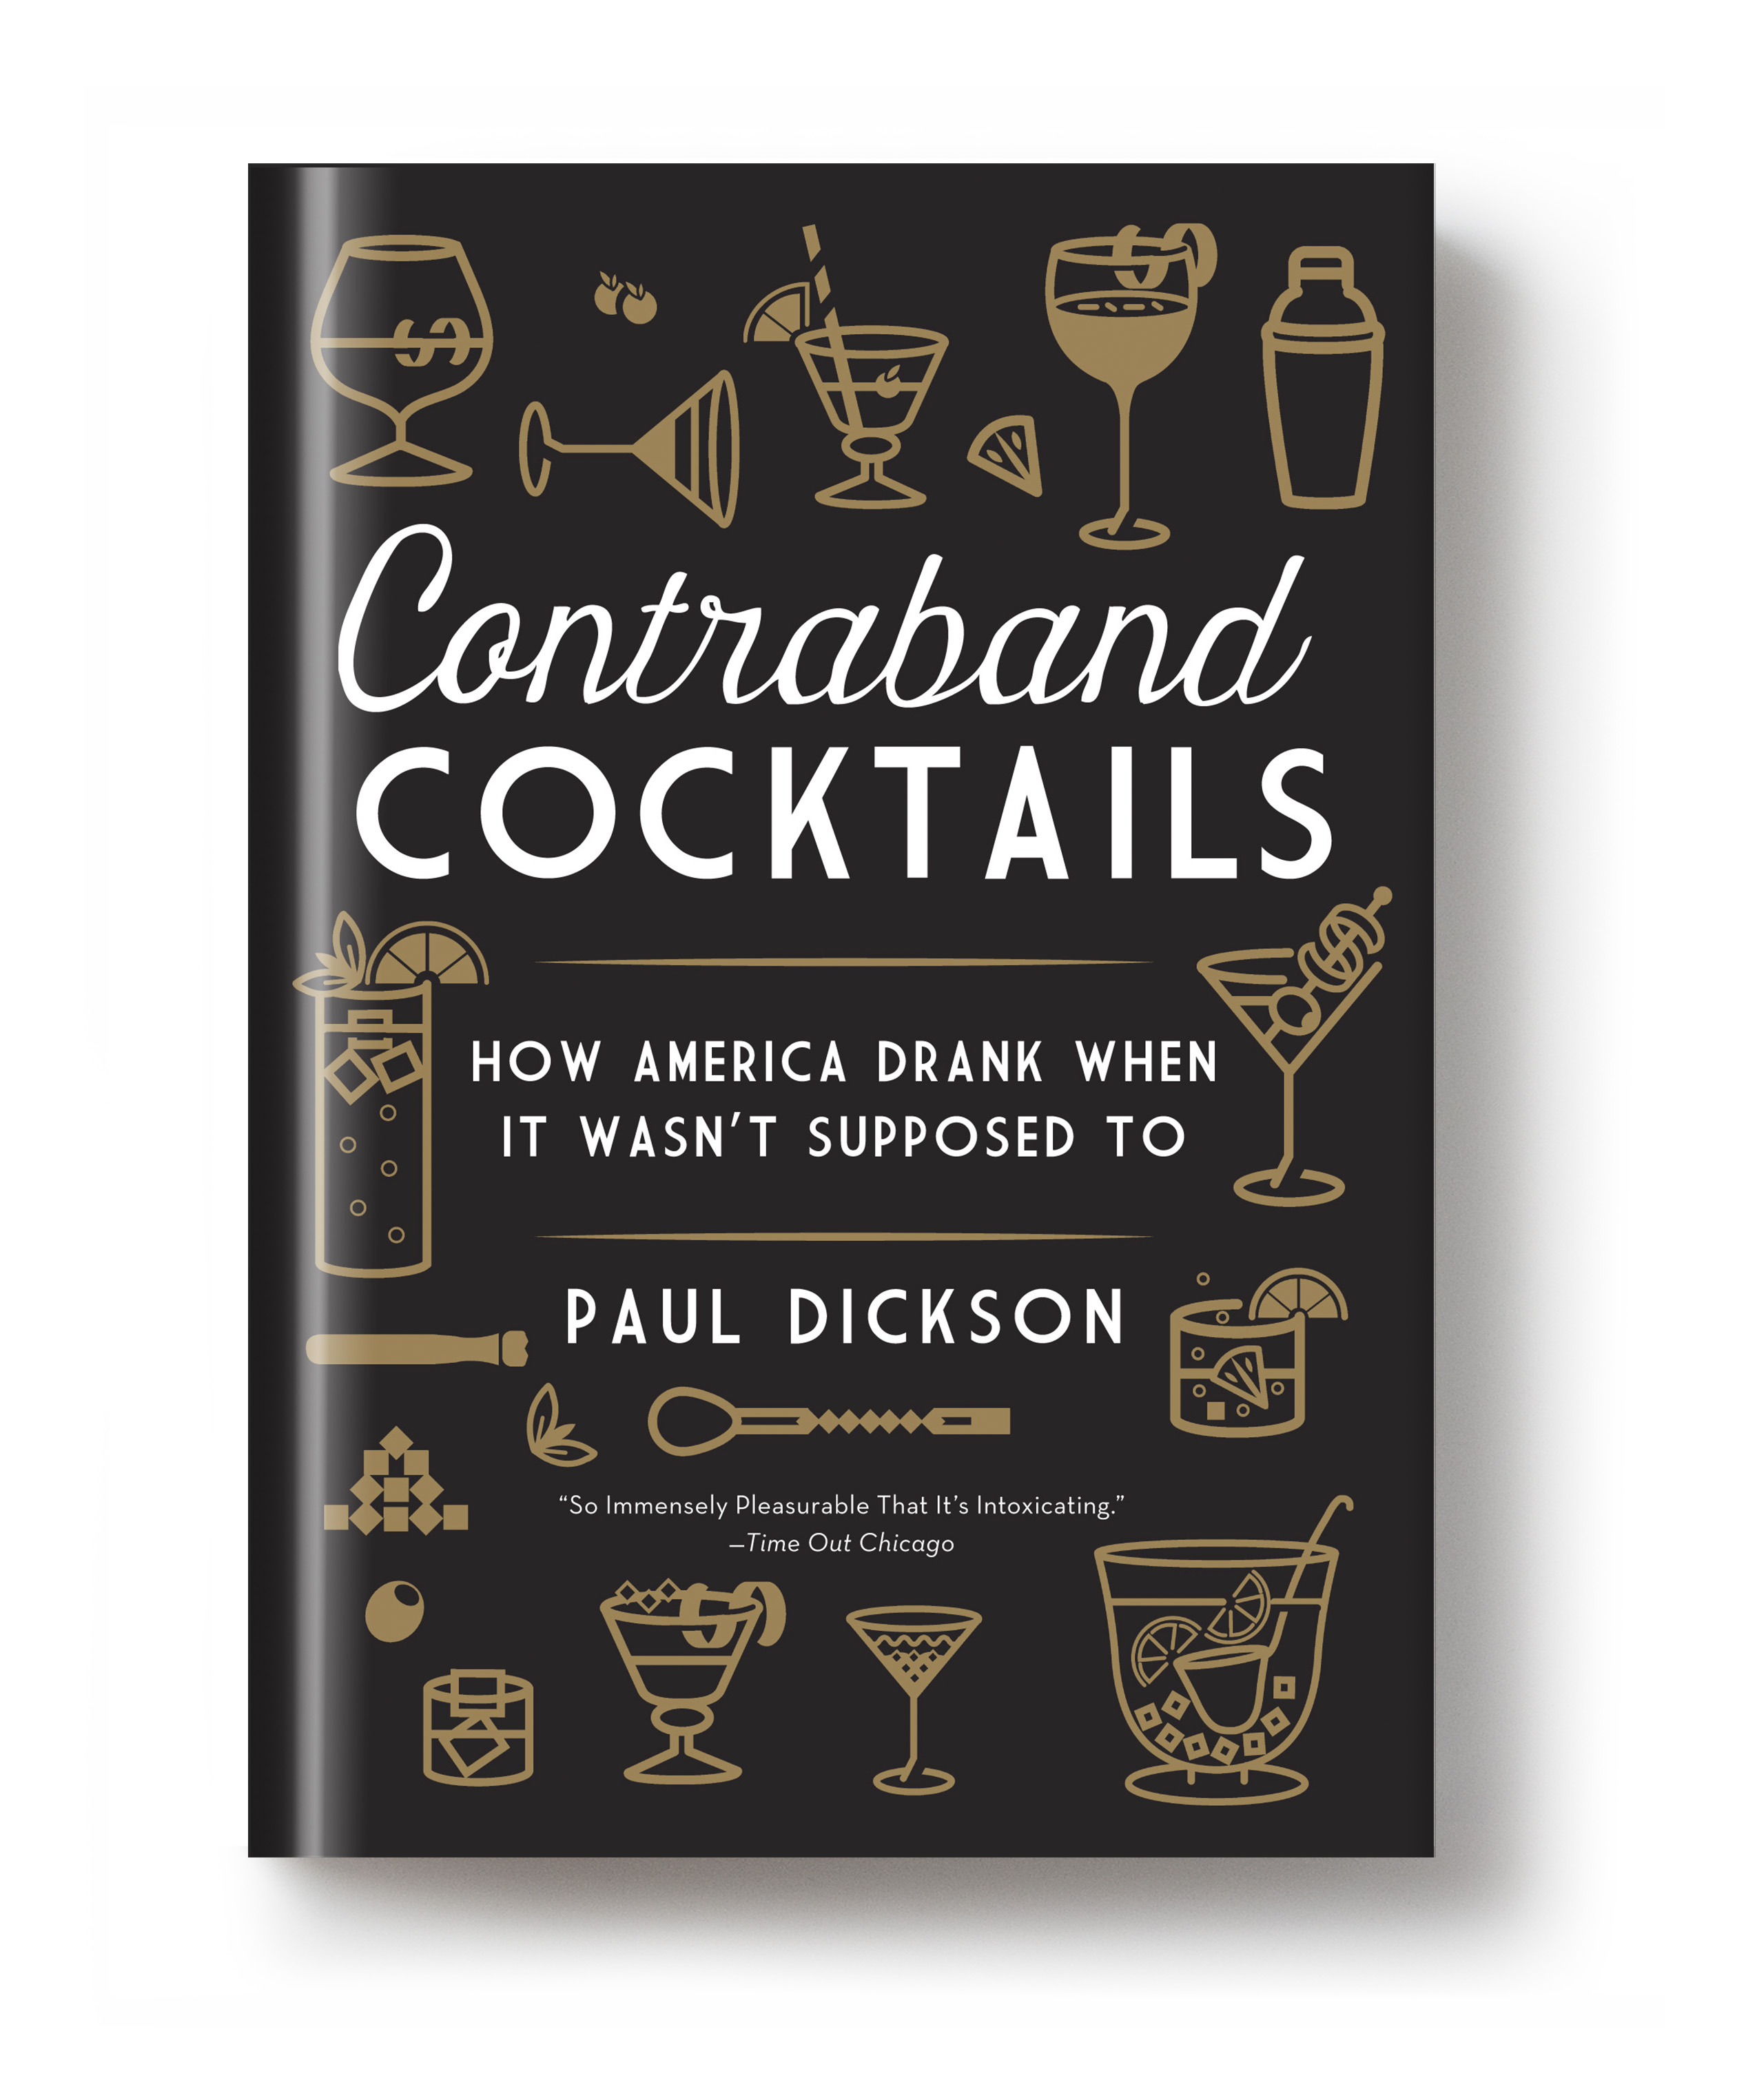 Fall Books Preview: Contraband Cocktails by Paul Dickson